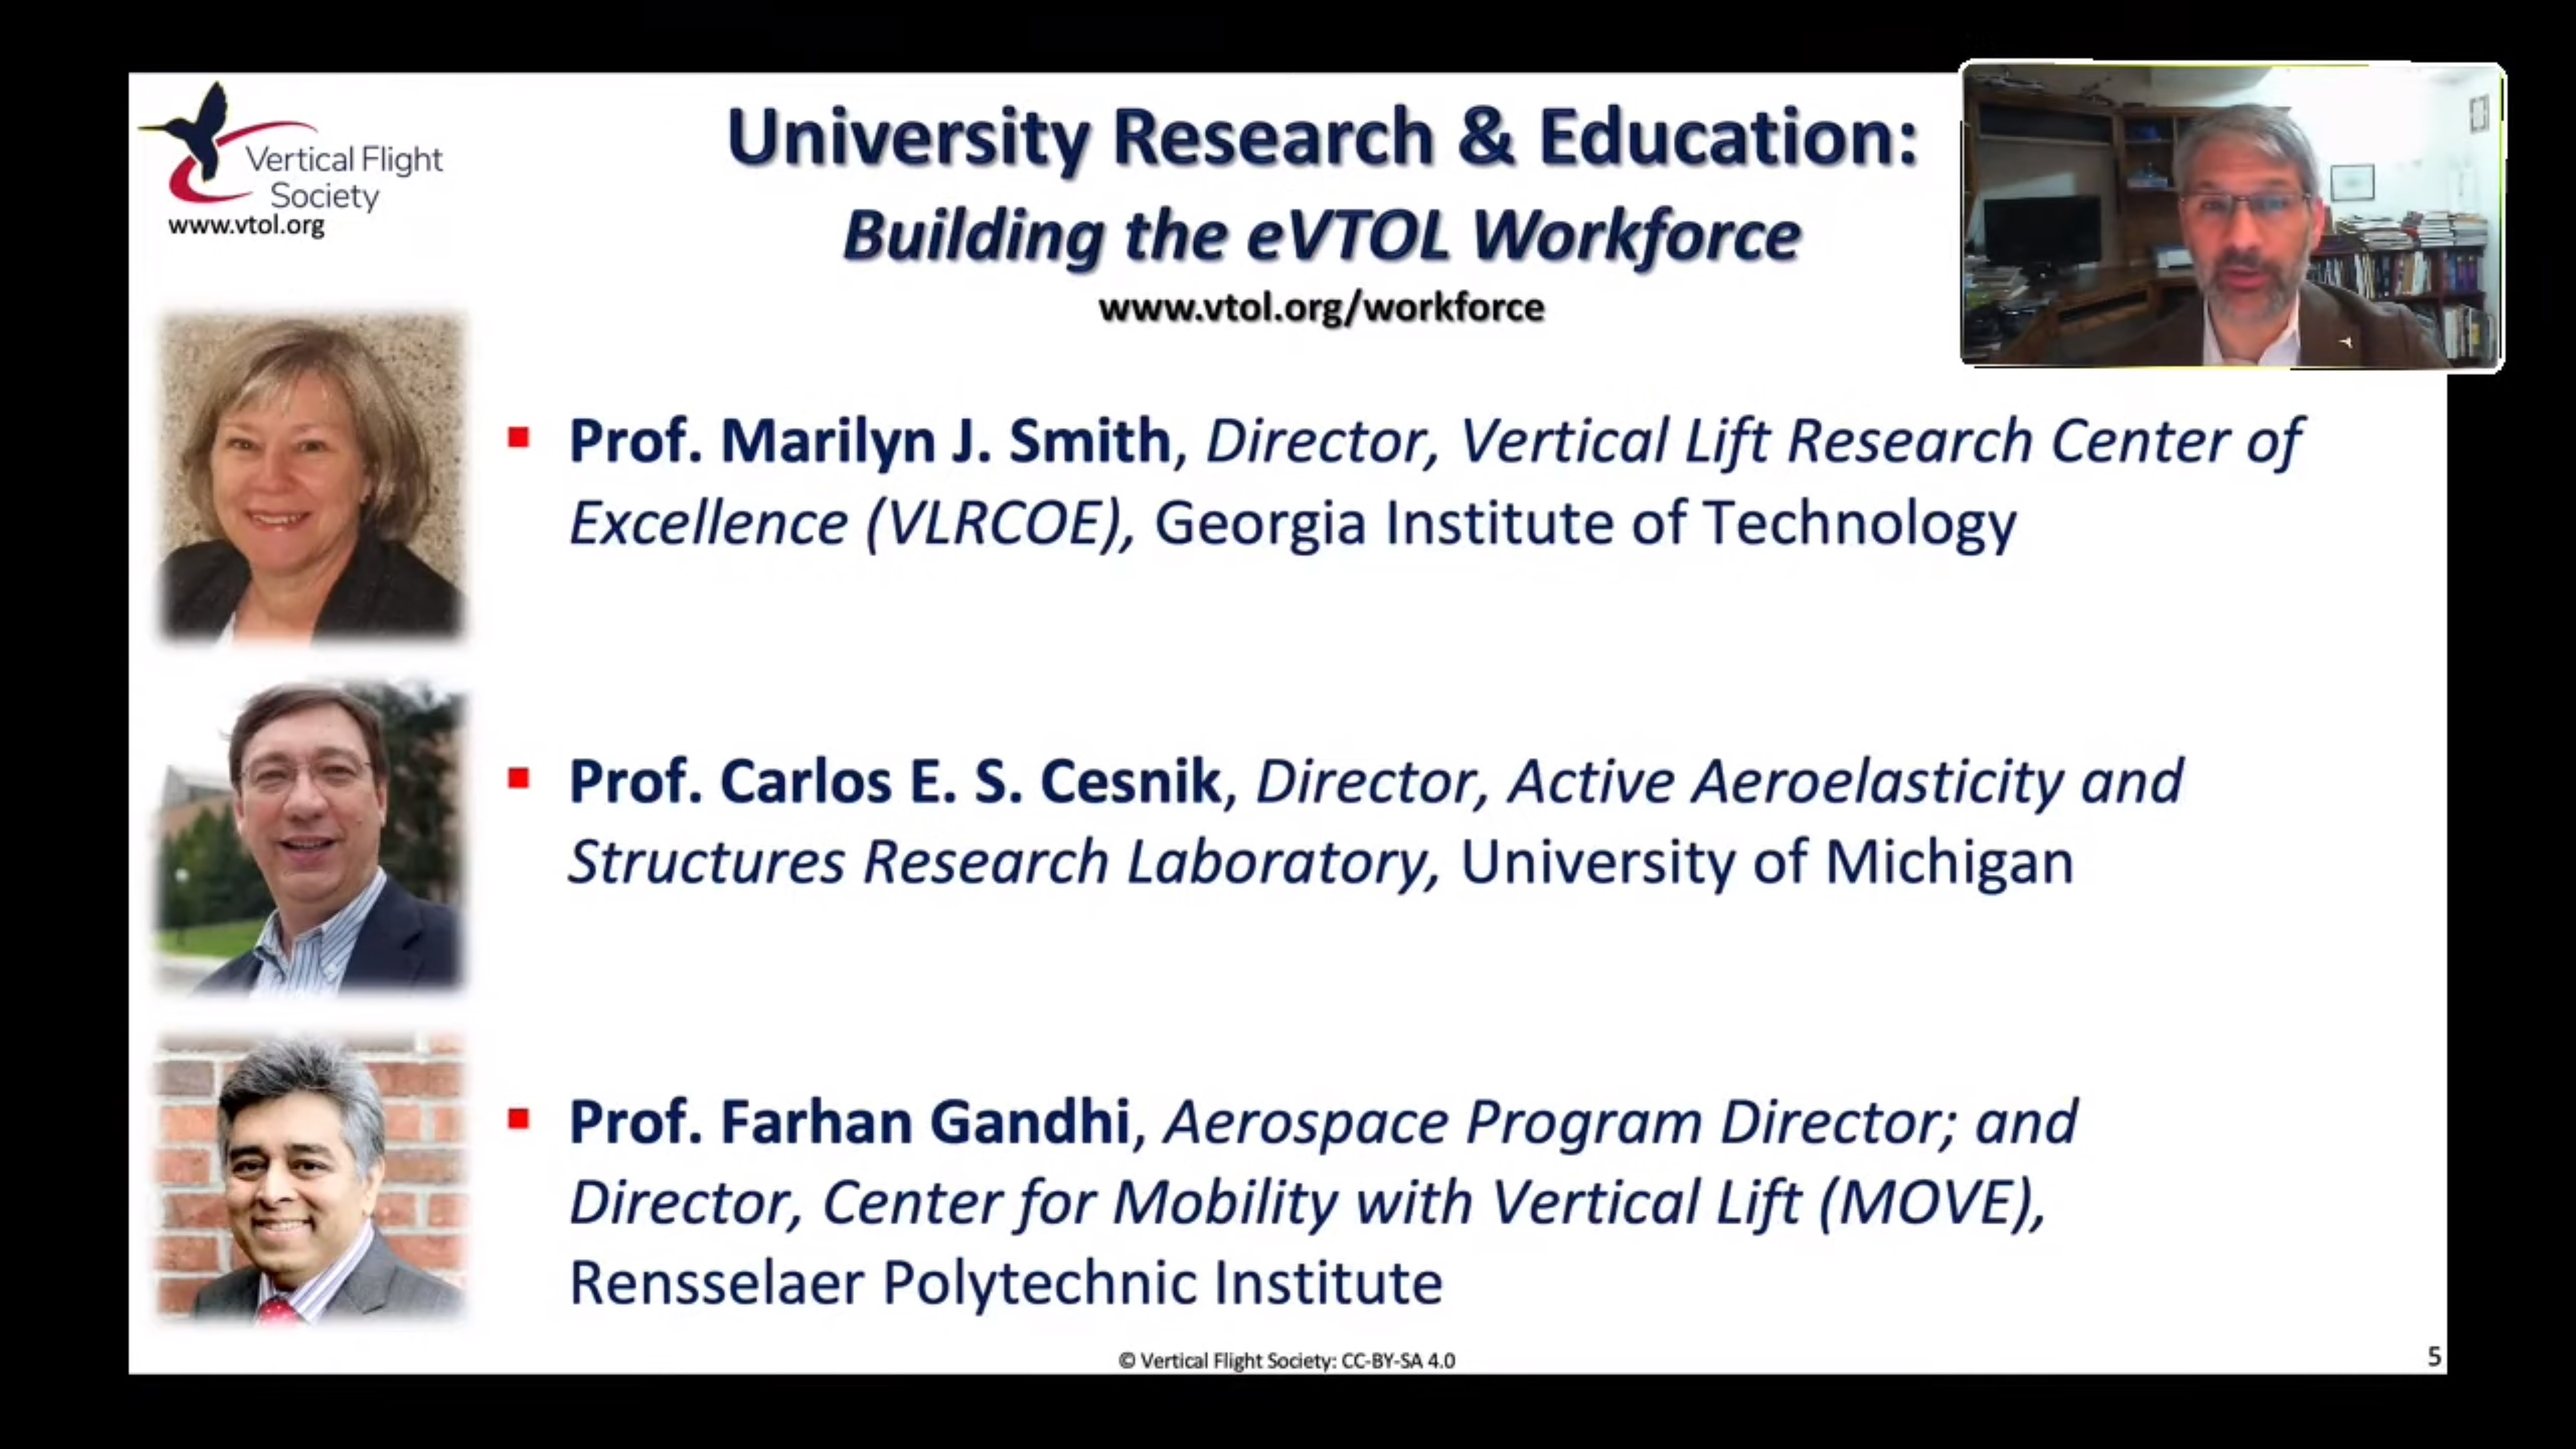 Agility Prime online meeting had VFS also led a distinguished university panel addressing the critical challenge of how to produce enough graduate students to simultaneously support the talent pipeline for eVTOL and Future Vertical Lift in April 2020.